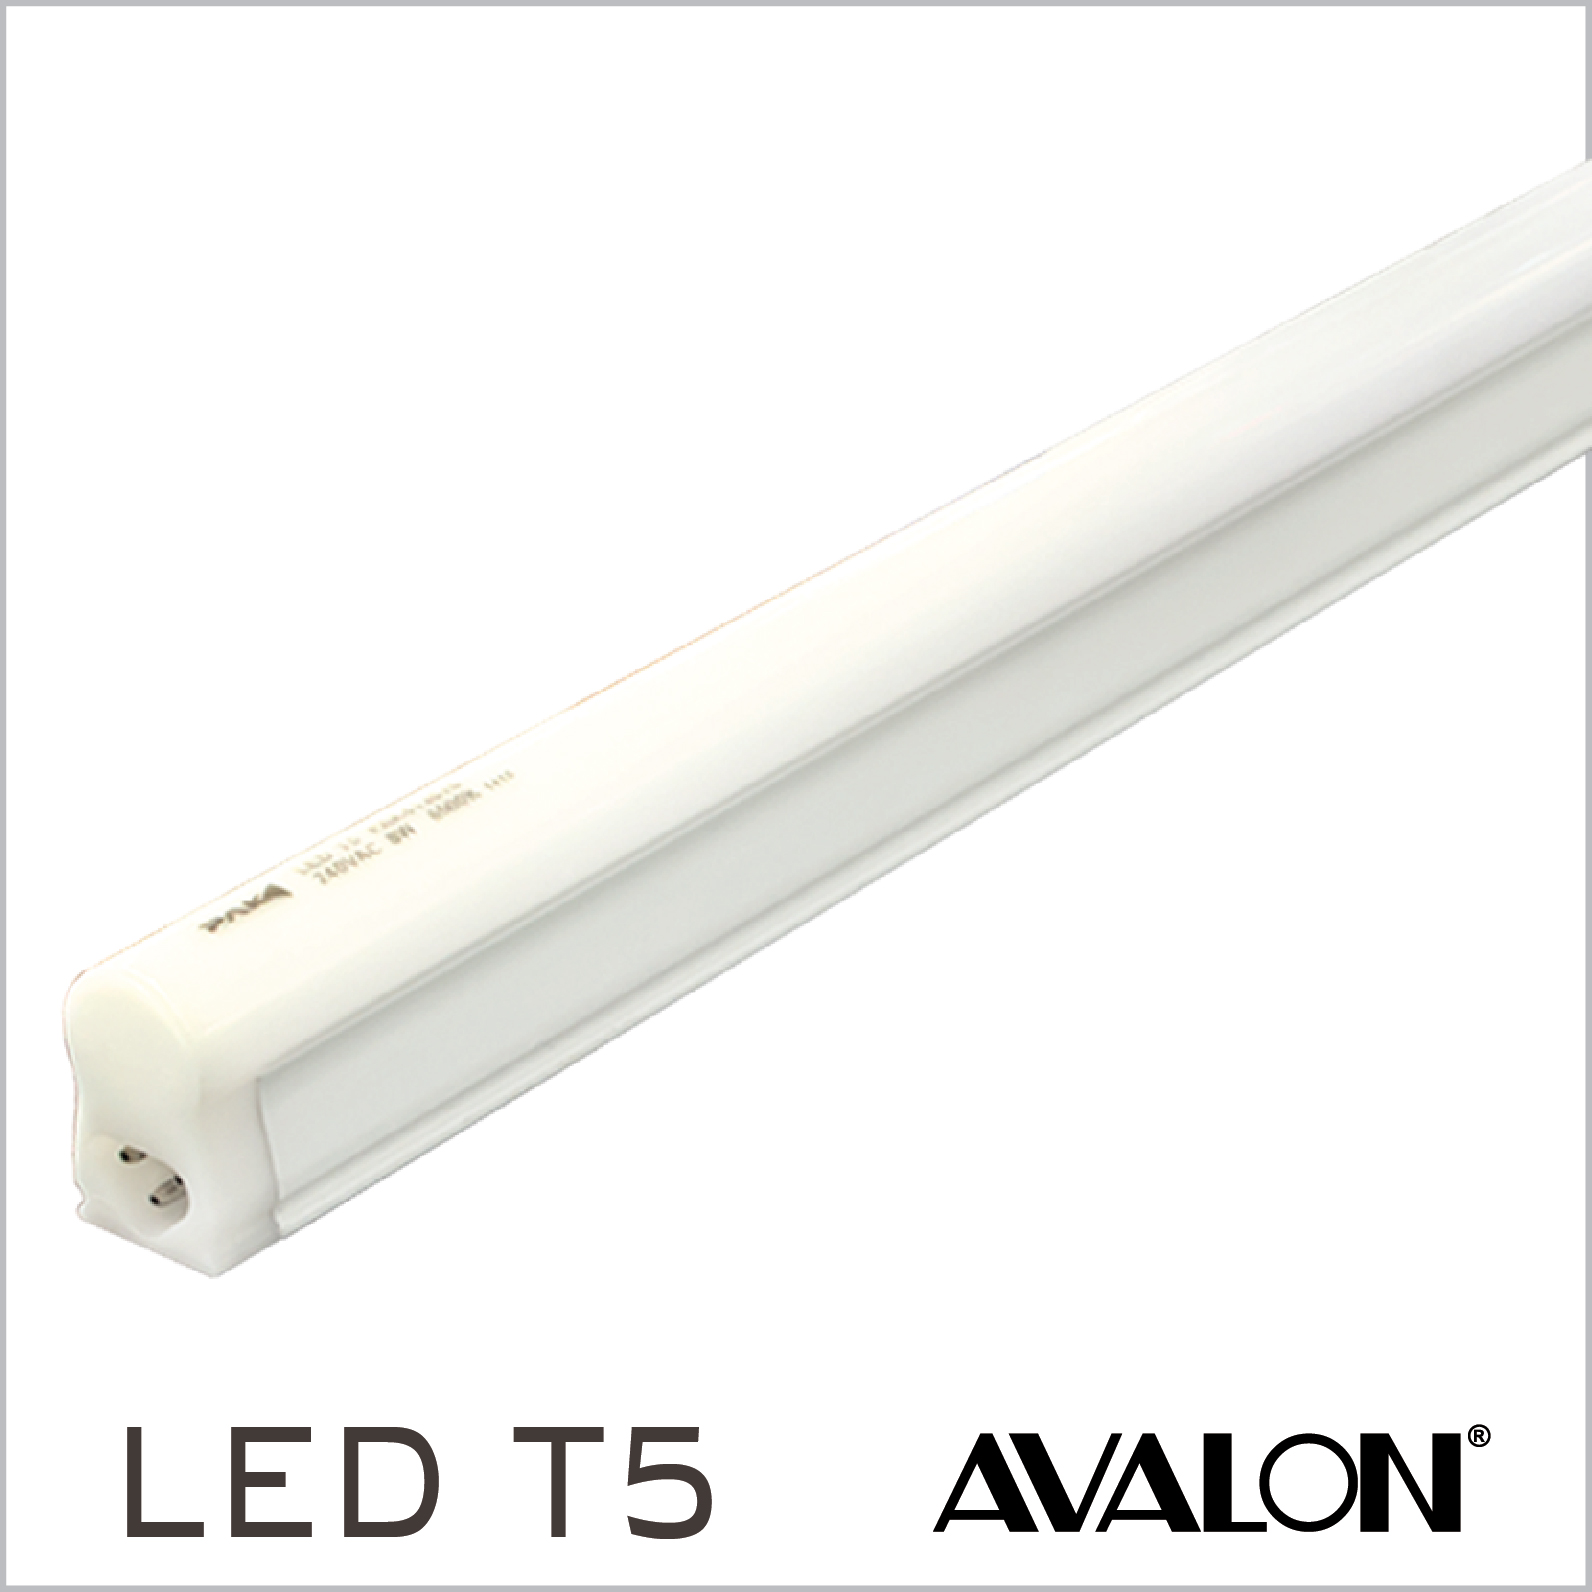 prismatic collections electrical of fluorescent diffuser pack battens light lighting wimbledon and